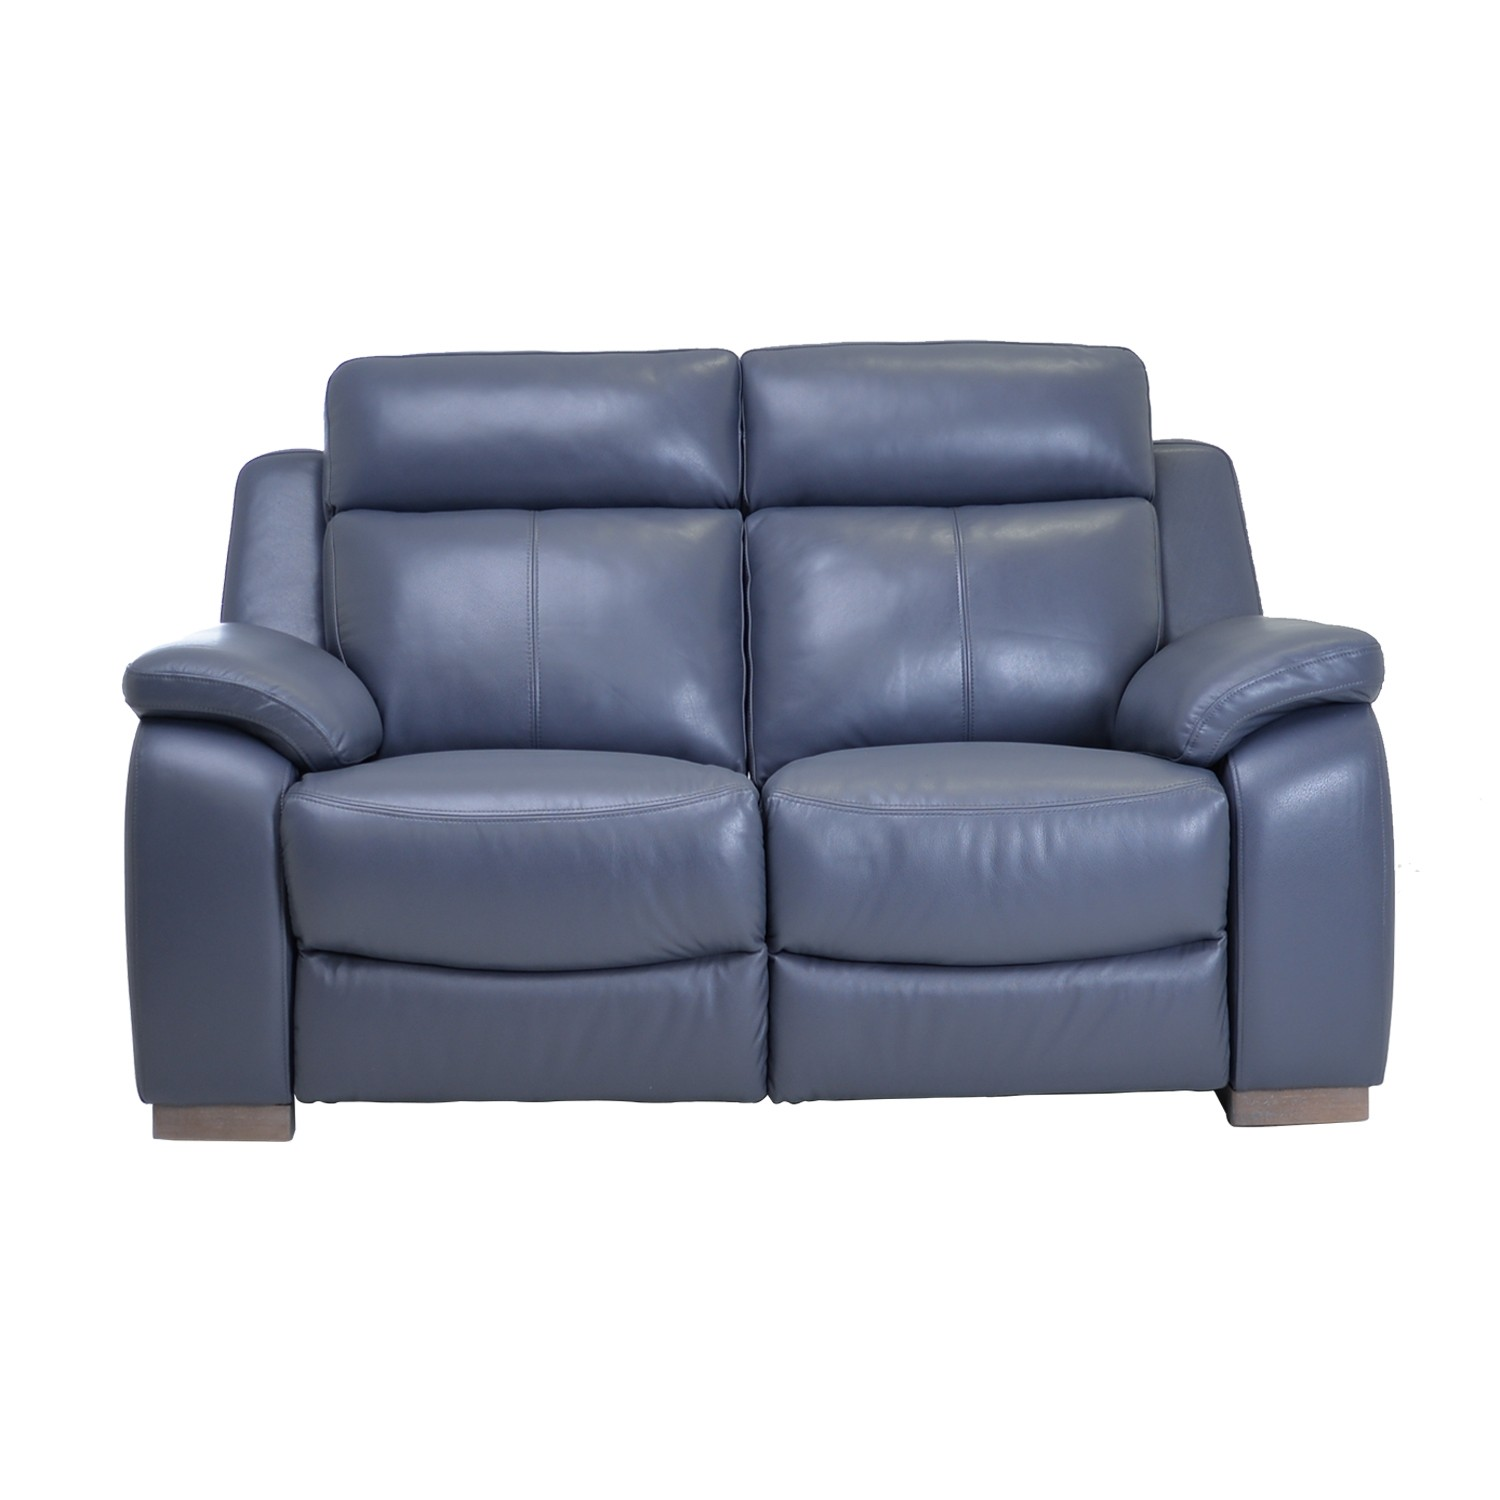 Casa Alabama 2 Seater Leather Power Recliner Lavender Grey